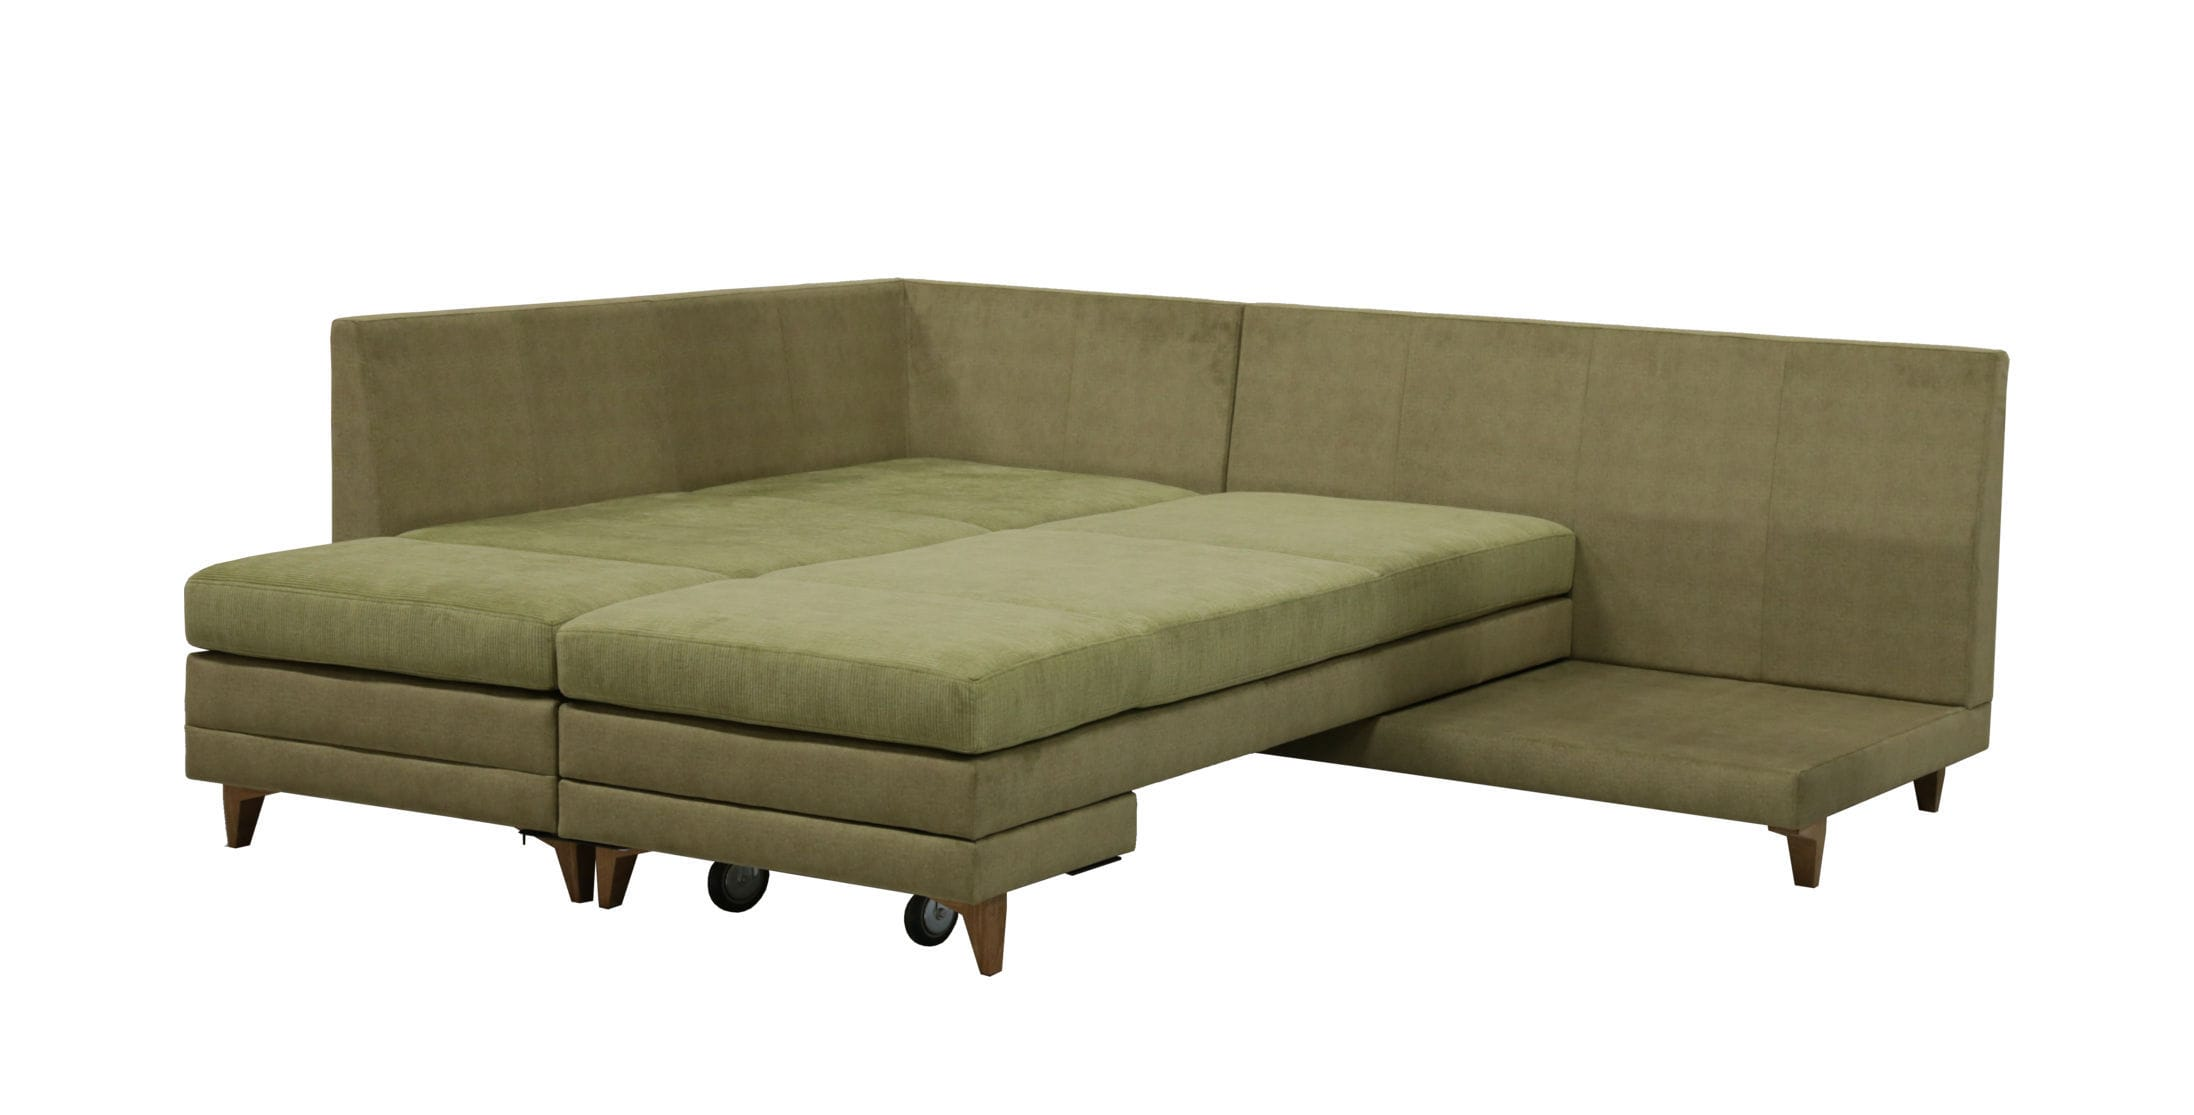 Sofa Test Corner Sofa Bed Contemporary Leather Curry Luonto Furniture